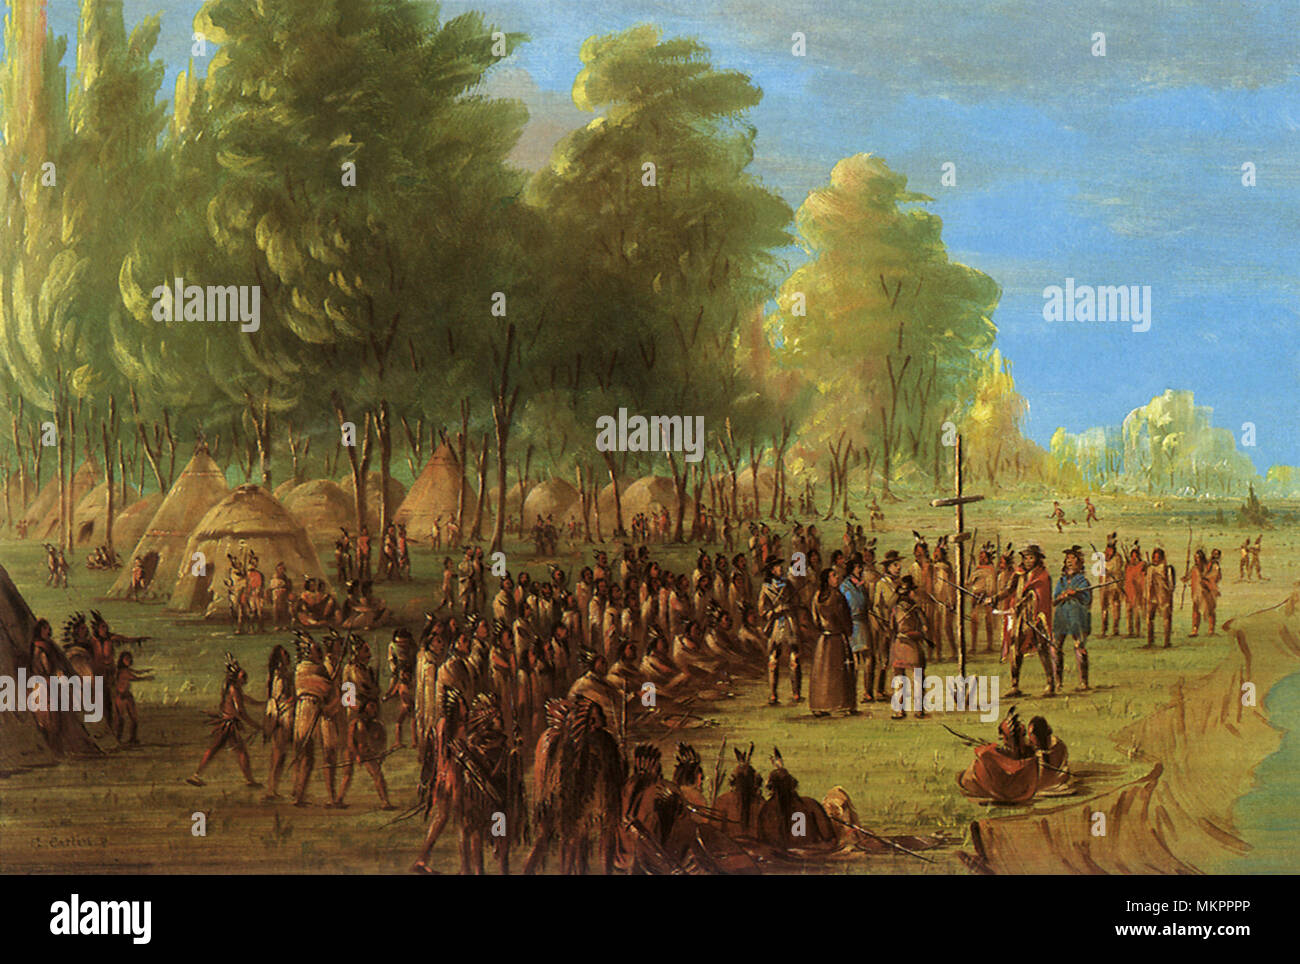 LaSalle Erecting a Cross and Taking Possession of Land 1840 - Stock Image